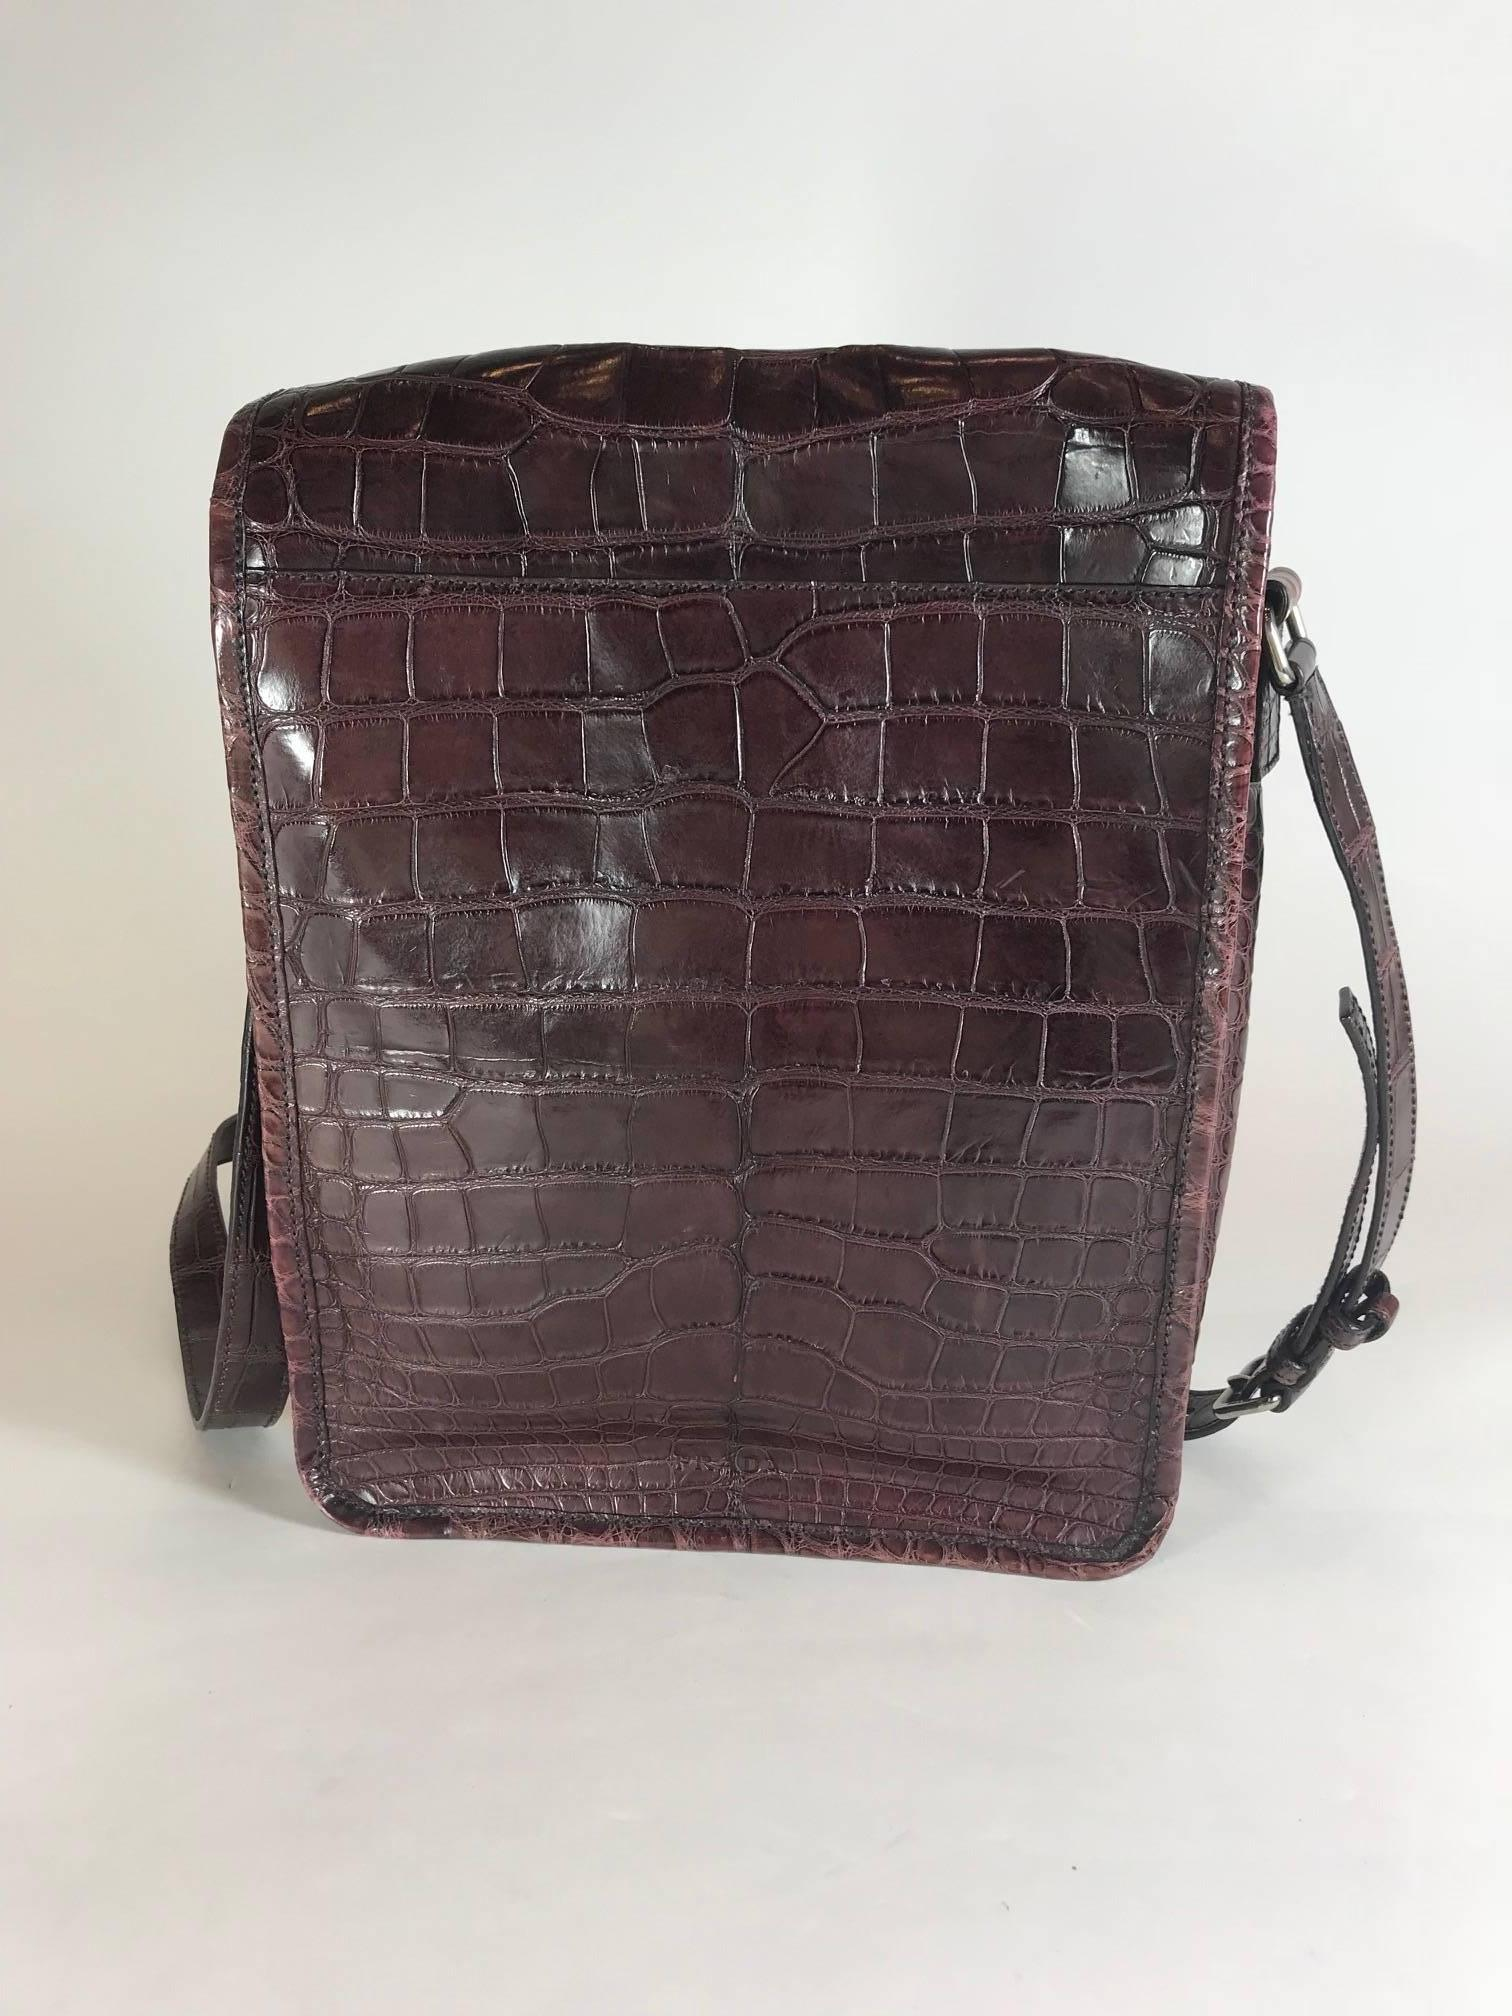 81247a5e33e5 ... authentic black prada maroon crocodile crossbody bag for sale 02384  d93c3